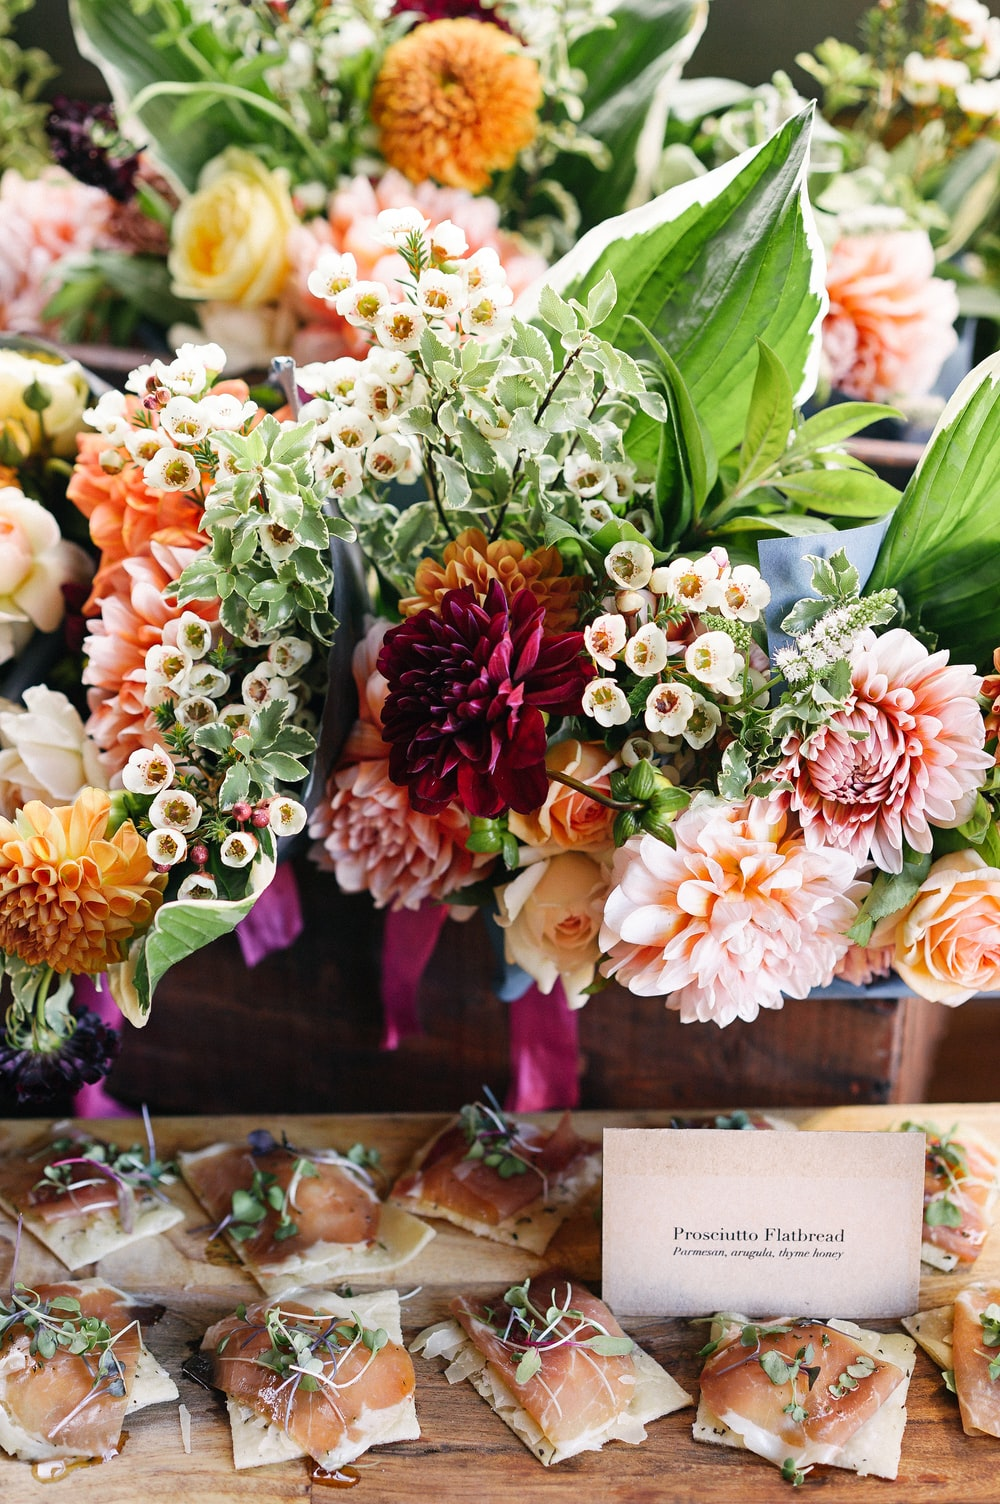 Floral 24 best free floral flower bouquet and rose photos on bouquet of flowers with salami prosciutto flatbread snacks on table in spring izmirmasajfo